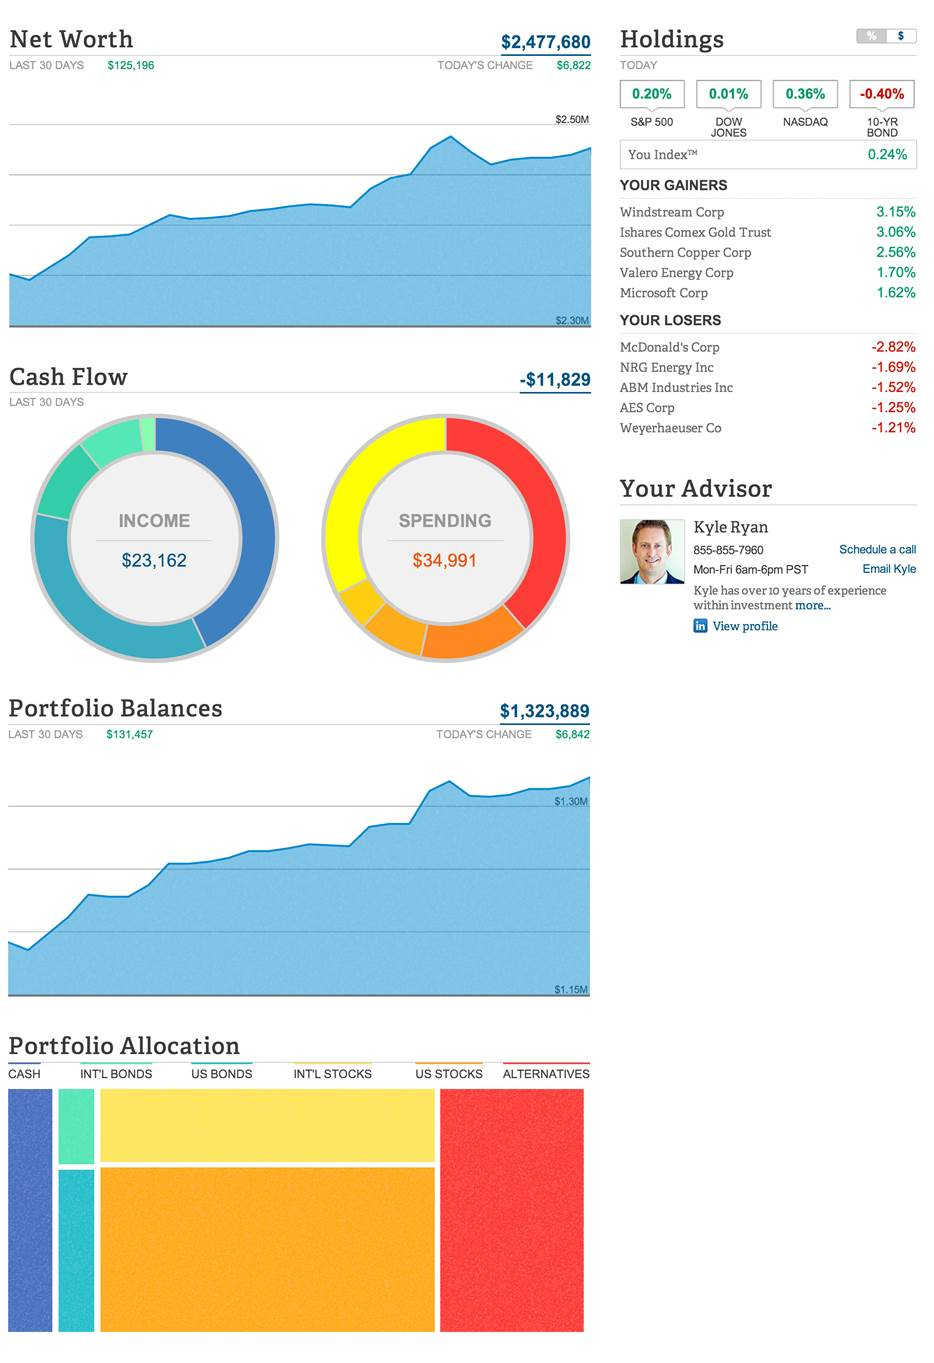 Personal Capital's net worth tool is a colorful snapshot of your entire financial picture.